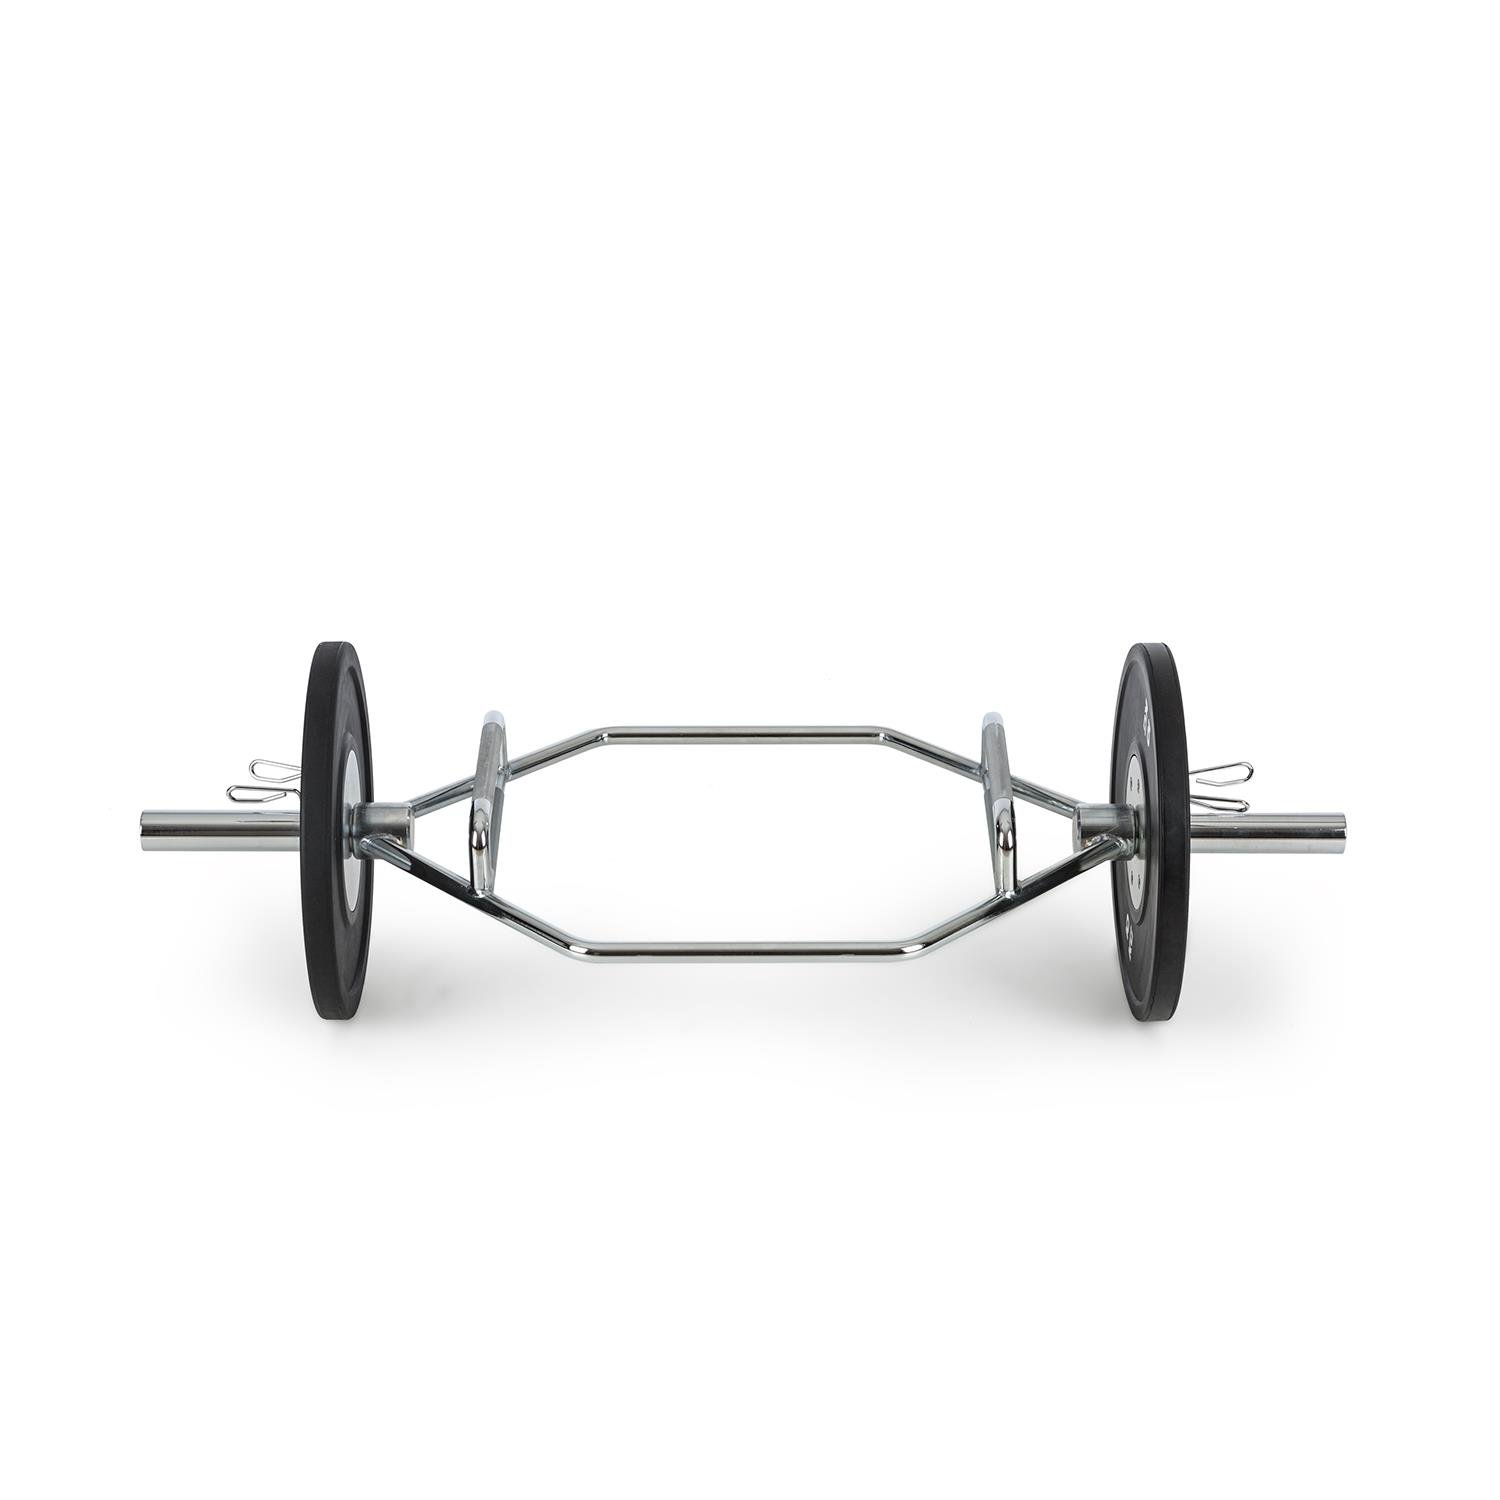 CAPITAL SPORTS • Beastbar Hex-Bar • Barra para pesas • Peso muerto • Deadlift Bar • Tríceps • Forma Hexagonal • Levantamiento saludable espalda y rodillas ...